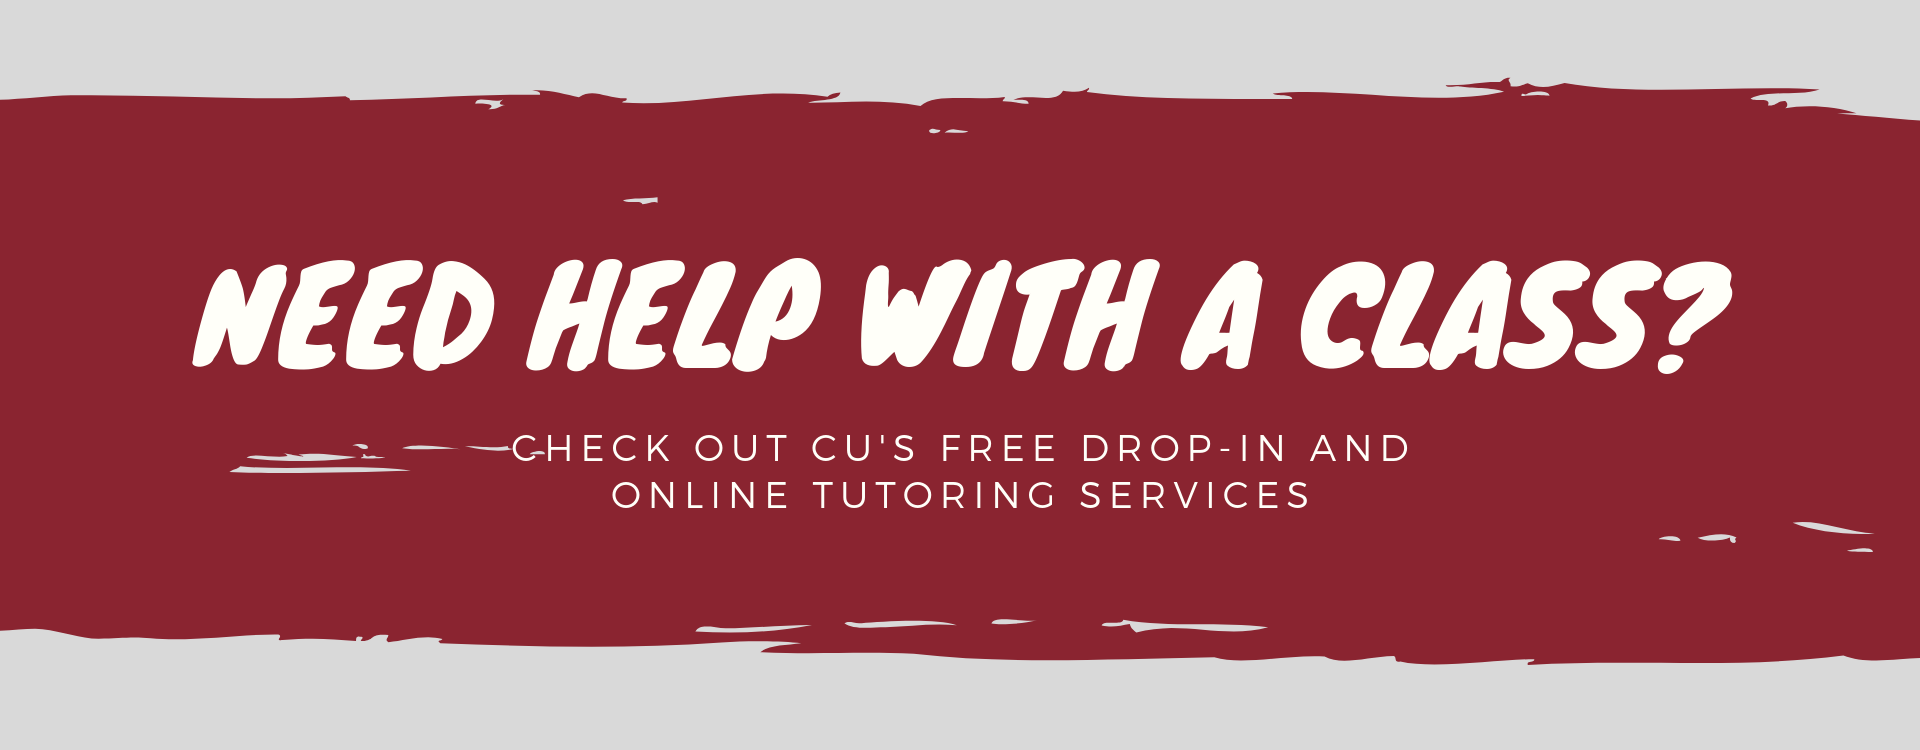 A graphic advertising CU's free Drop-In and Online Tutoring services.